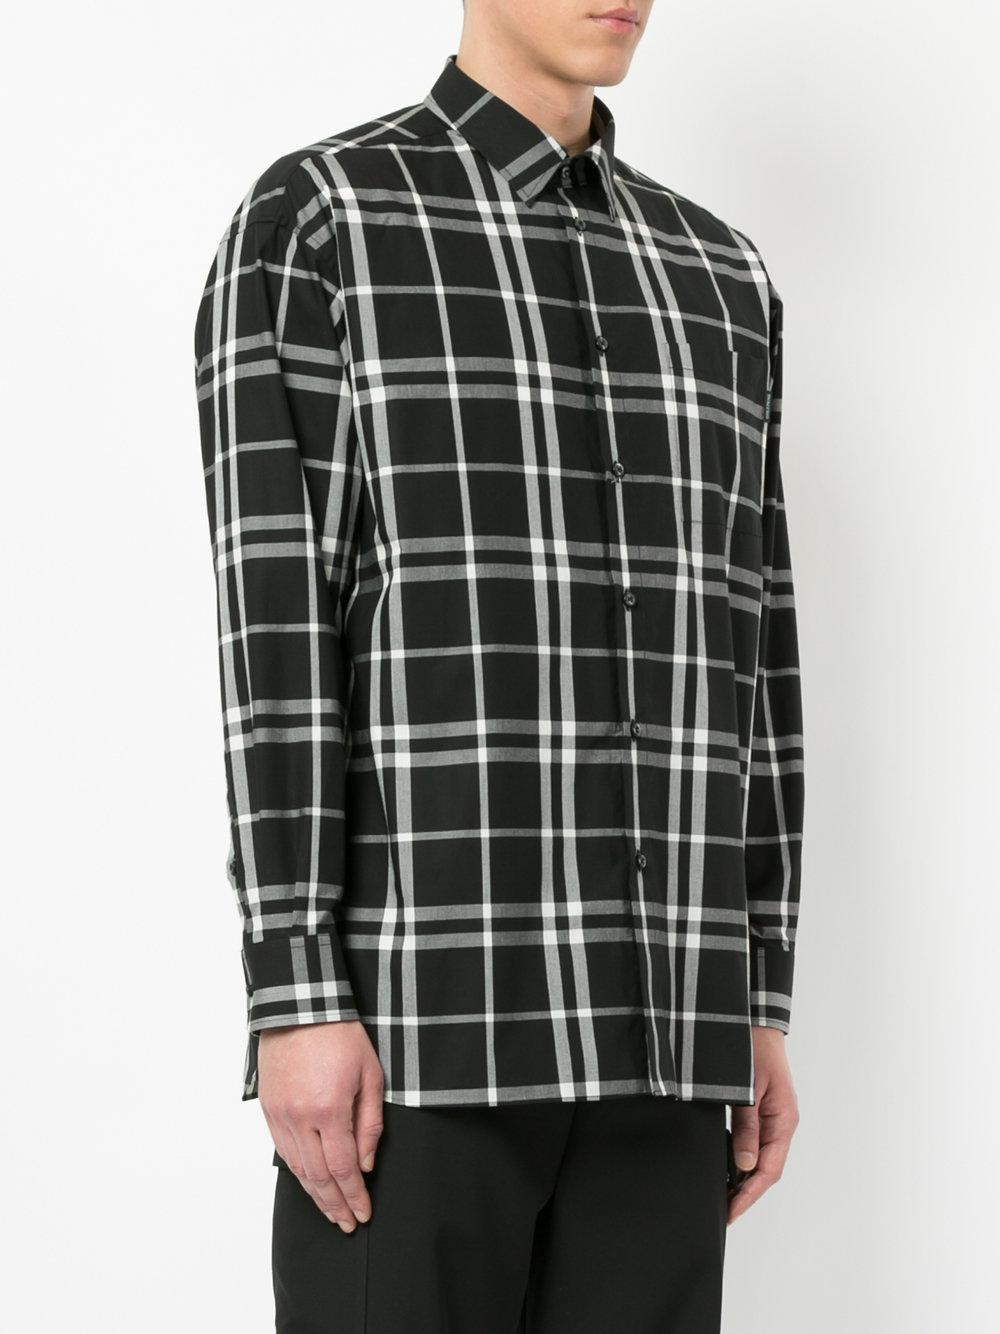 Professional Cheap Price Cheap Sale Outlet boxy plaid shirt - Black Guild Prime Get Authentic Cheap Online Buy Cheap Footlocker Finishline Quality Outlet Store LF0swtF1T